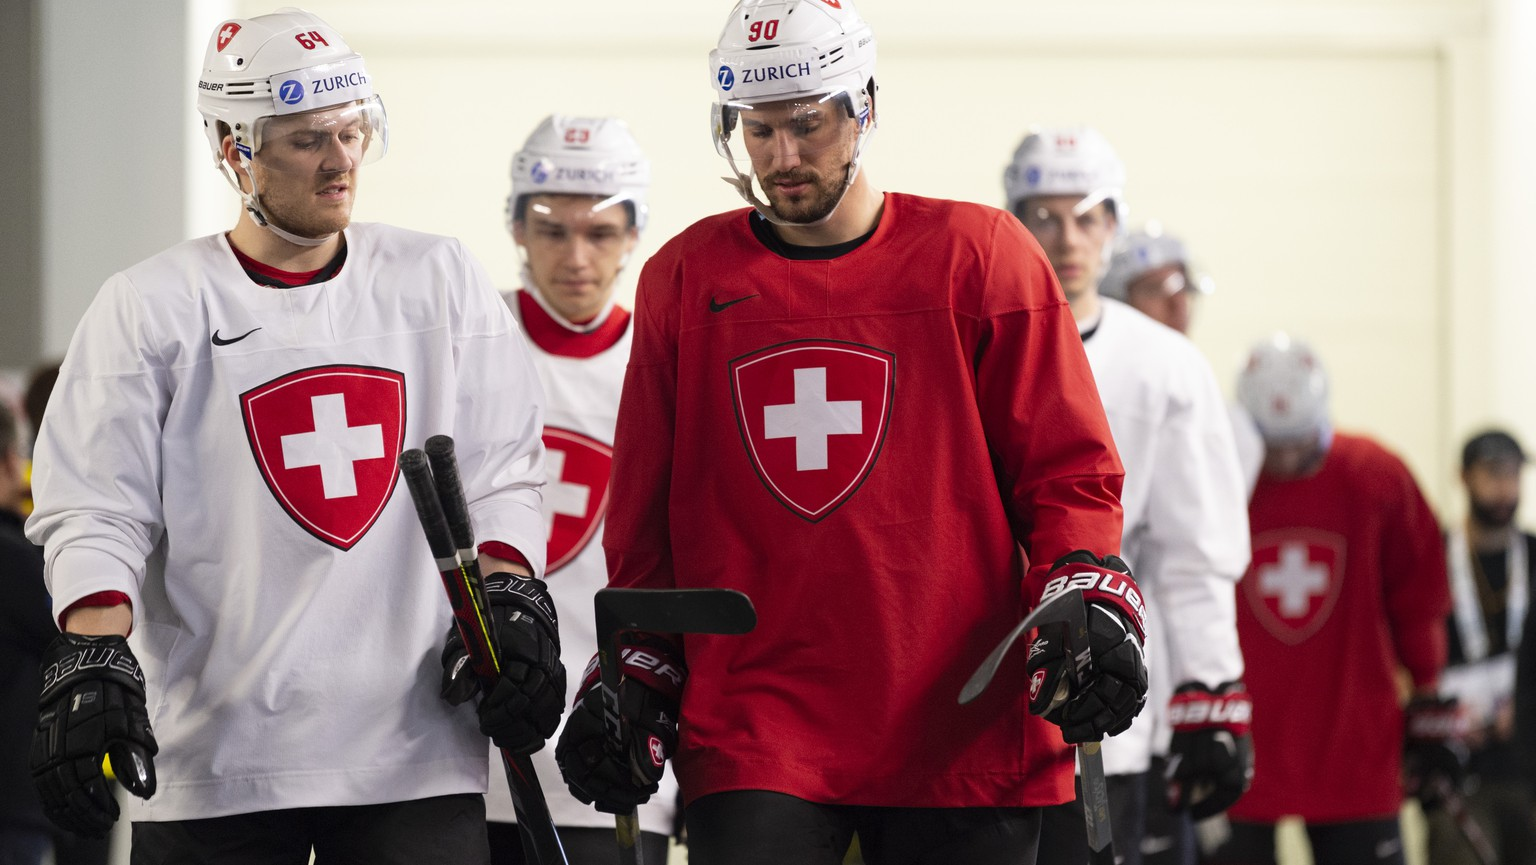 Switzerland's Christoph Bertschy, left, and Switzerland's Roman Josi, during a training session of the Swiss team at the IIHF 2019 World Ice Hockey Championships, at the Ondrej Nepela Arena in Bratislava, Slovakia, on Friday, May 10, 2019. (KEYSTONE/Melanie Duchene)